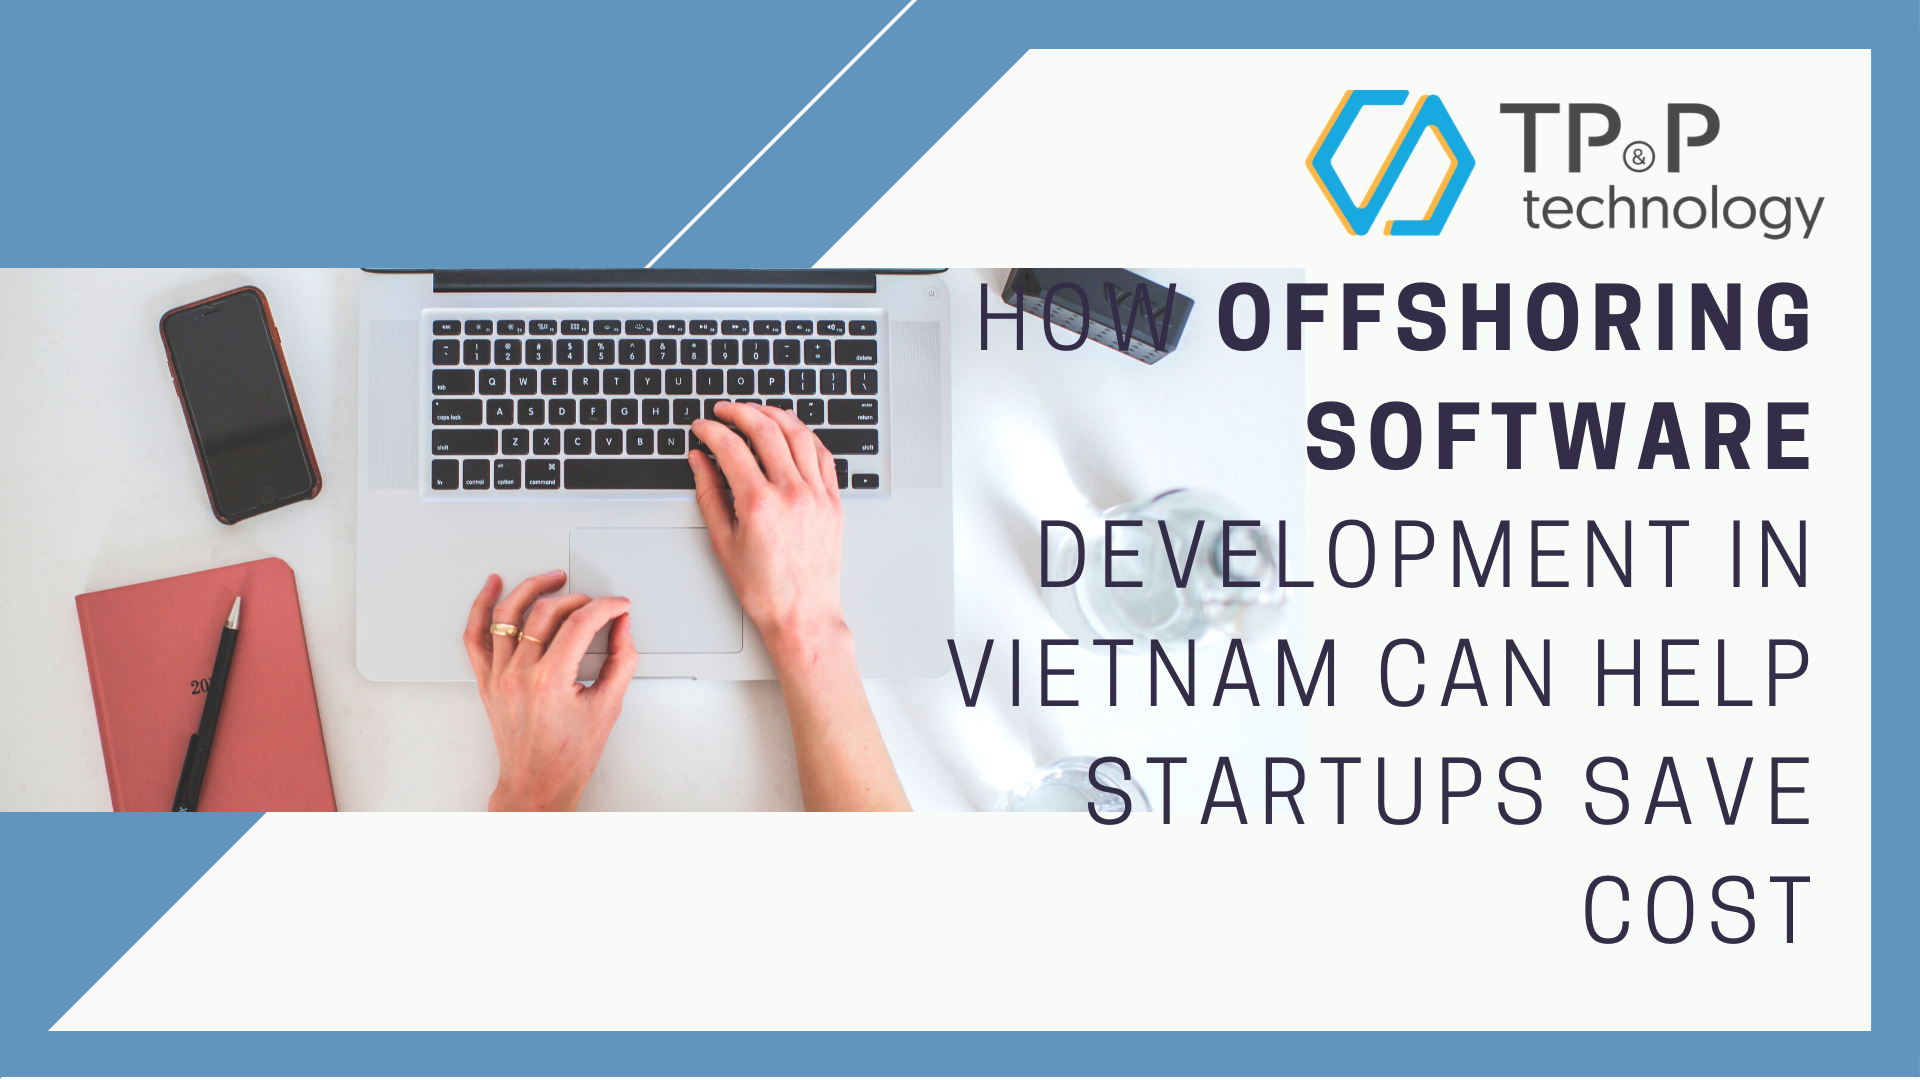 How Offshore Software Development In Vietnam Can Help Startups Save Cost